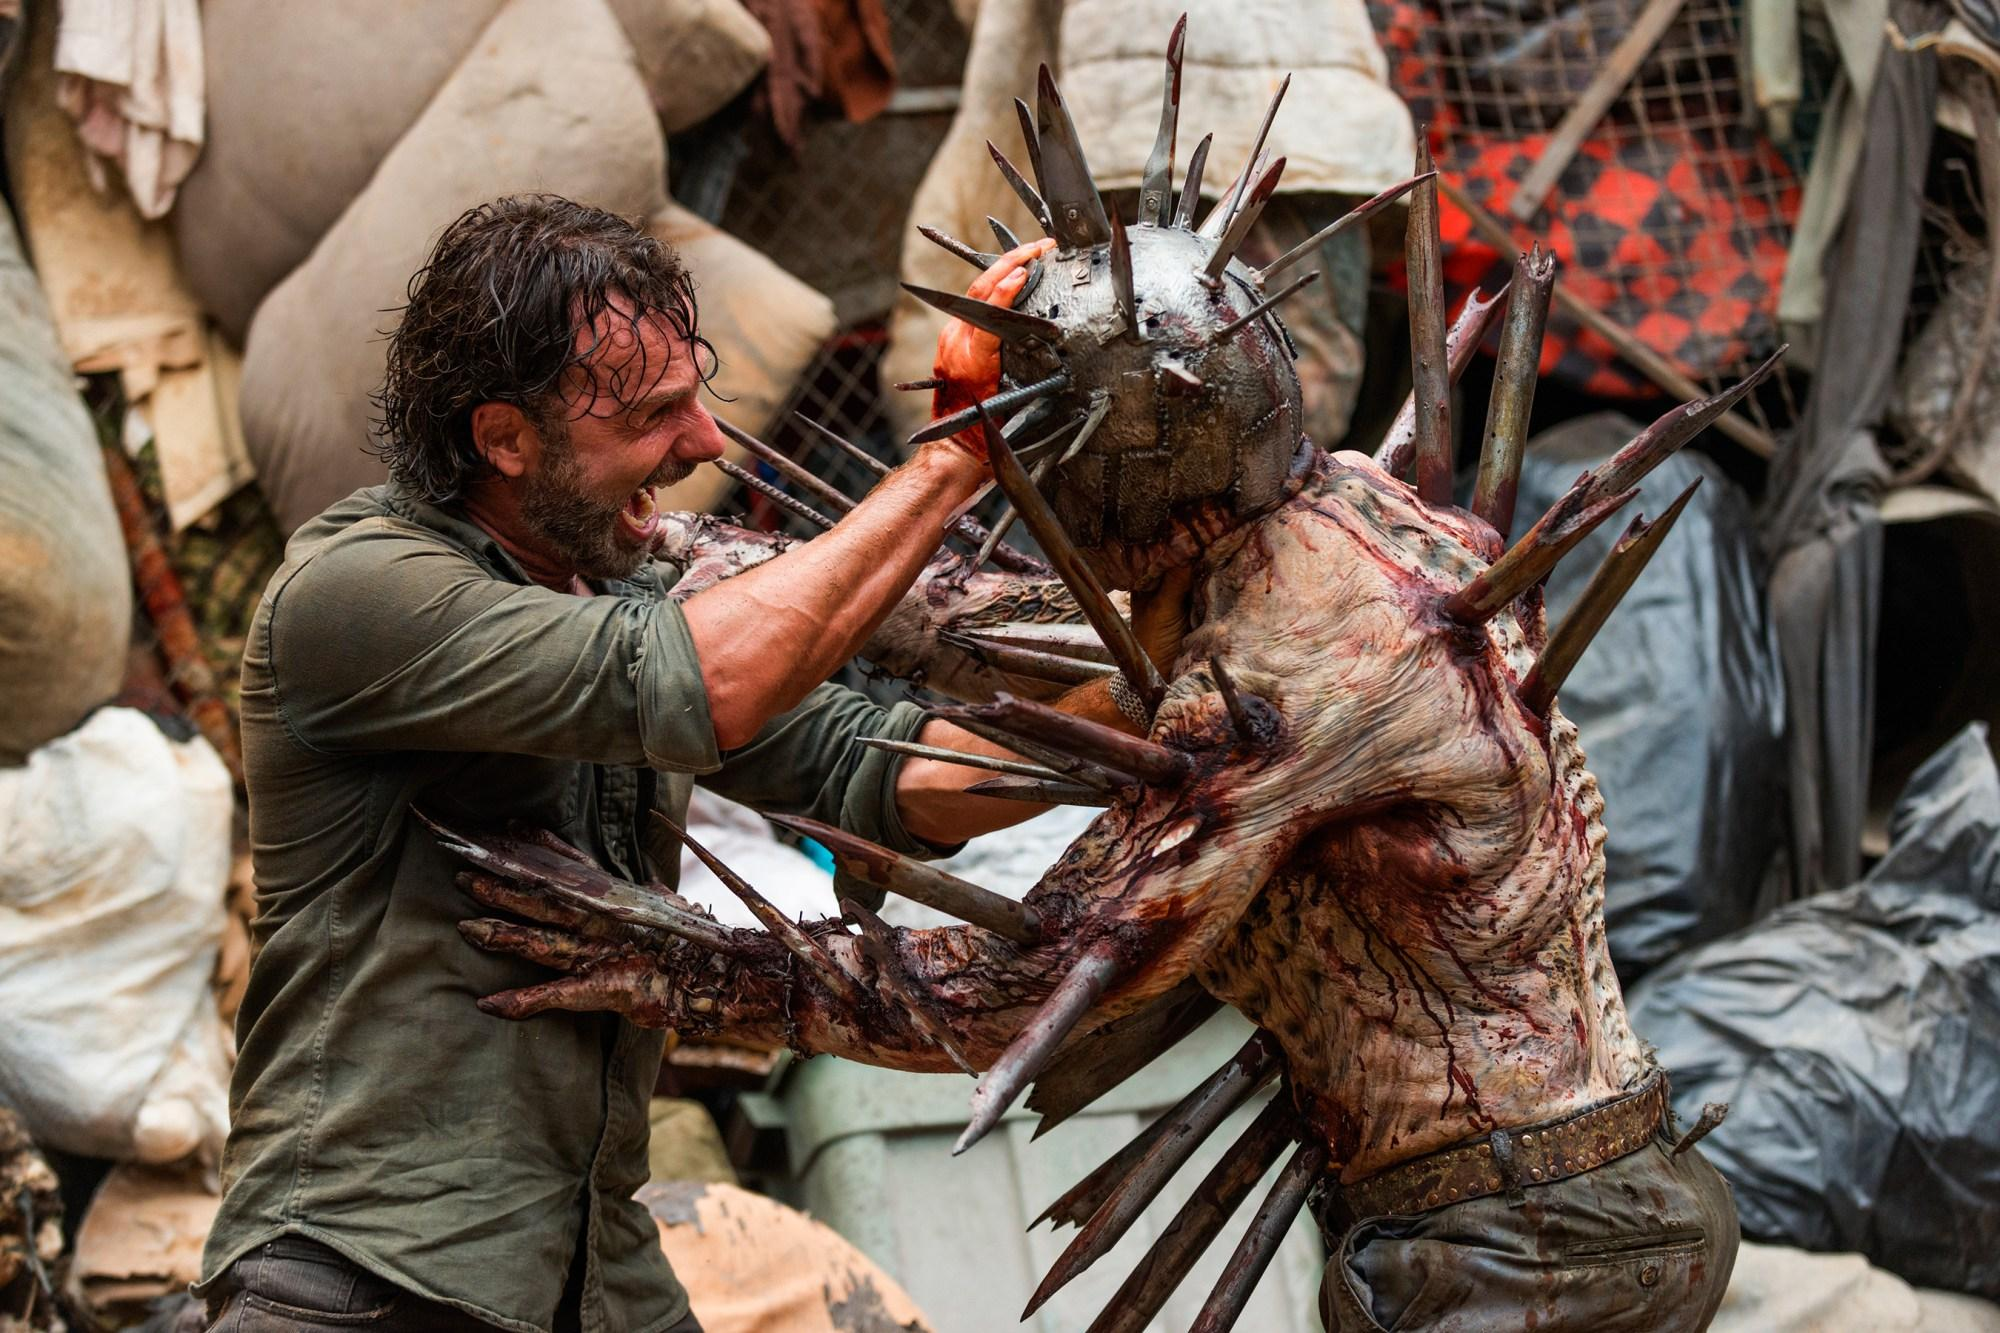 The Walking Dead season 7 episode 10: Watch Rick fight the most insane zombie ever in 'New Best Friends' | The Independent